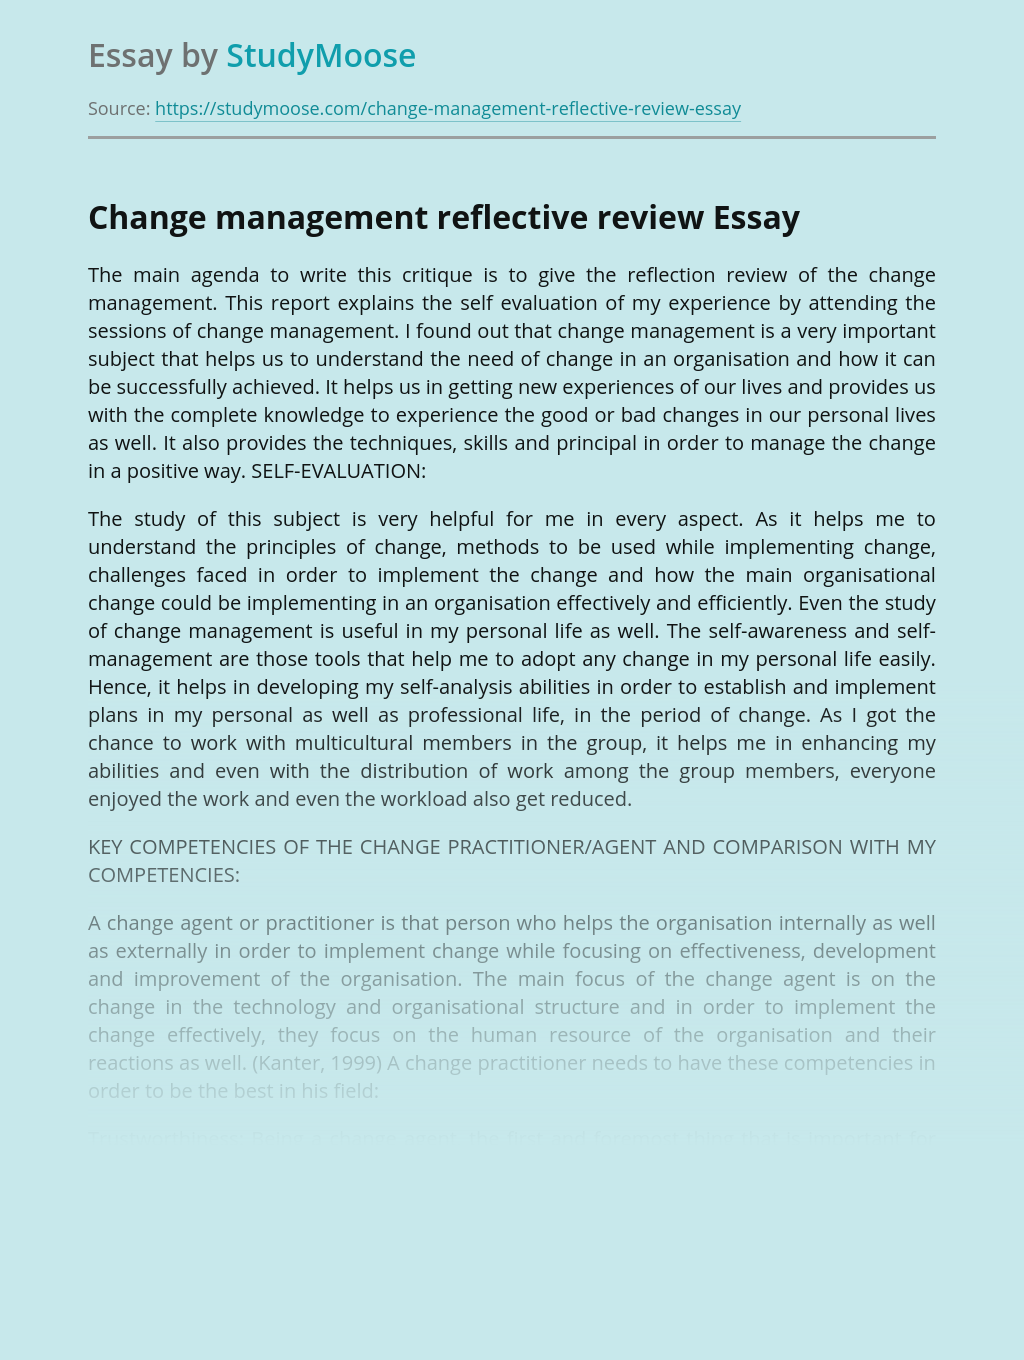 Change management reflective review